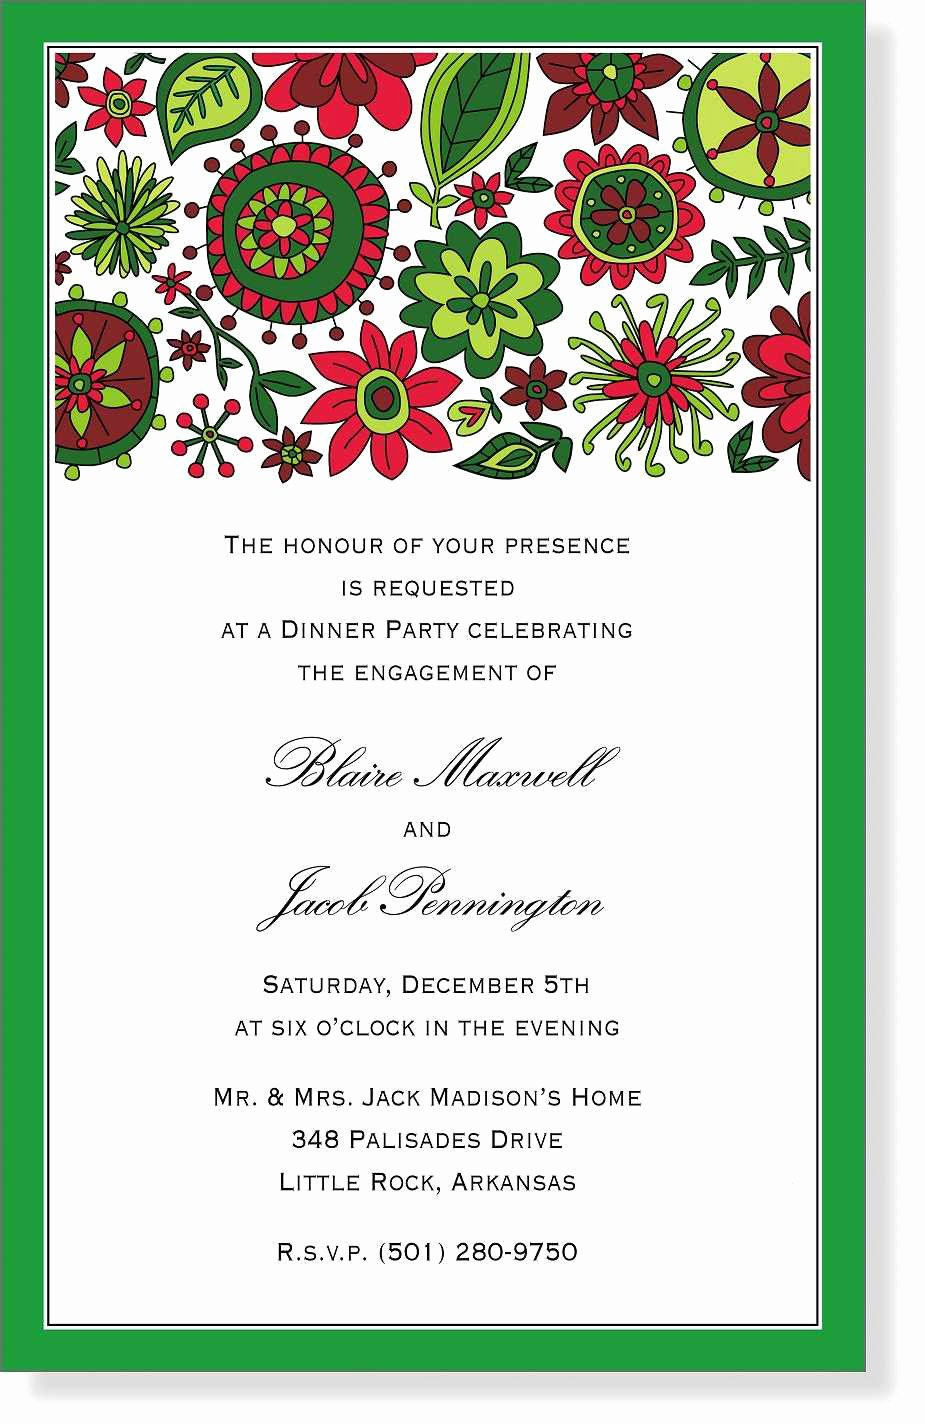 Dinner Party Invitation Quotes Image Quotes at Hippoquotes